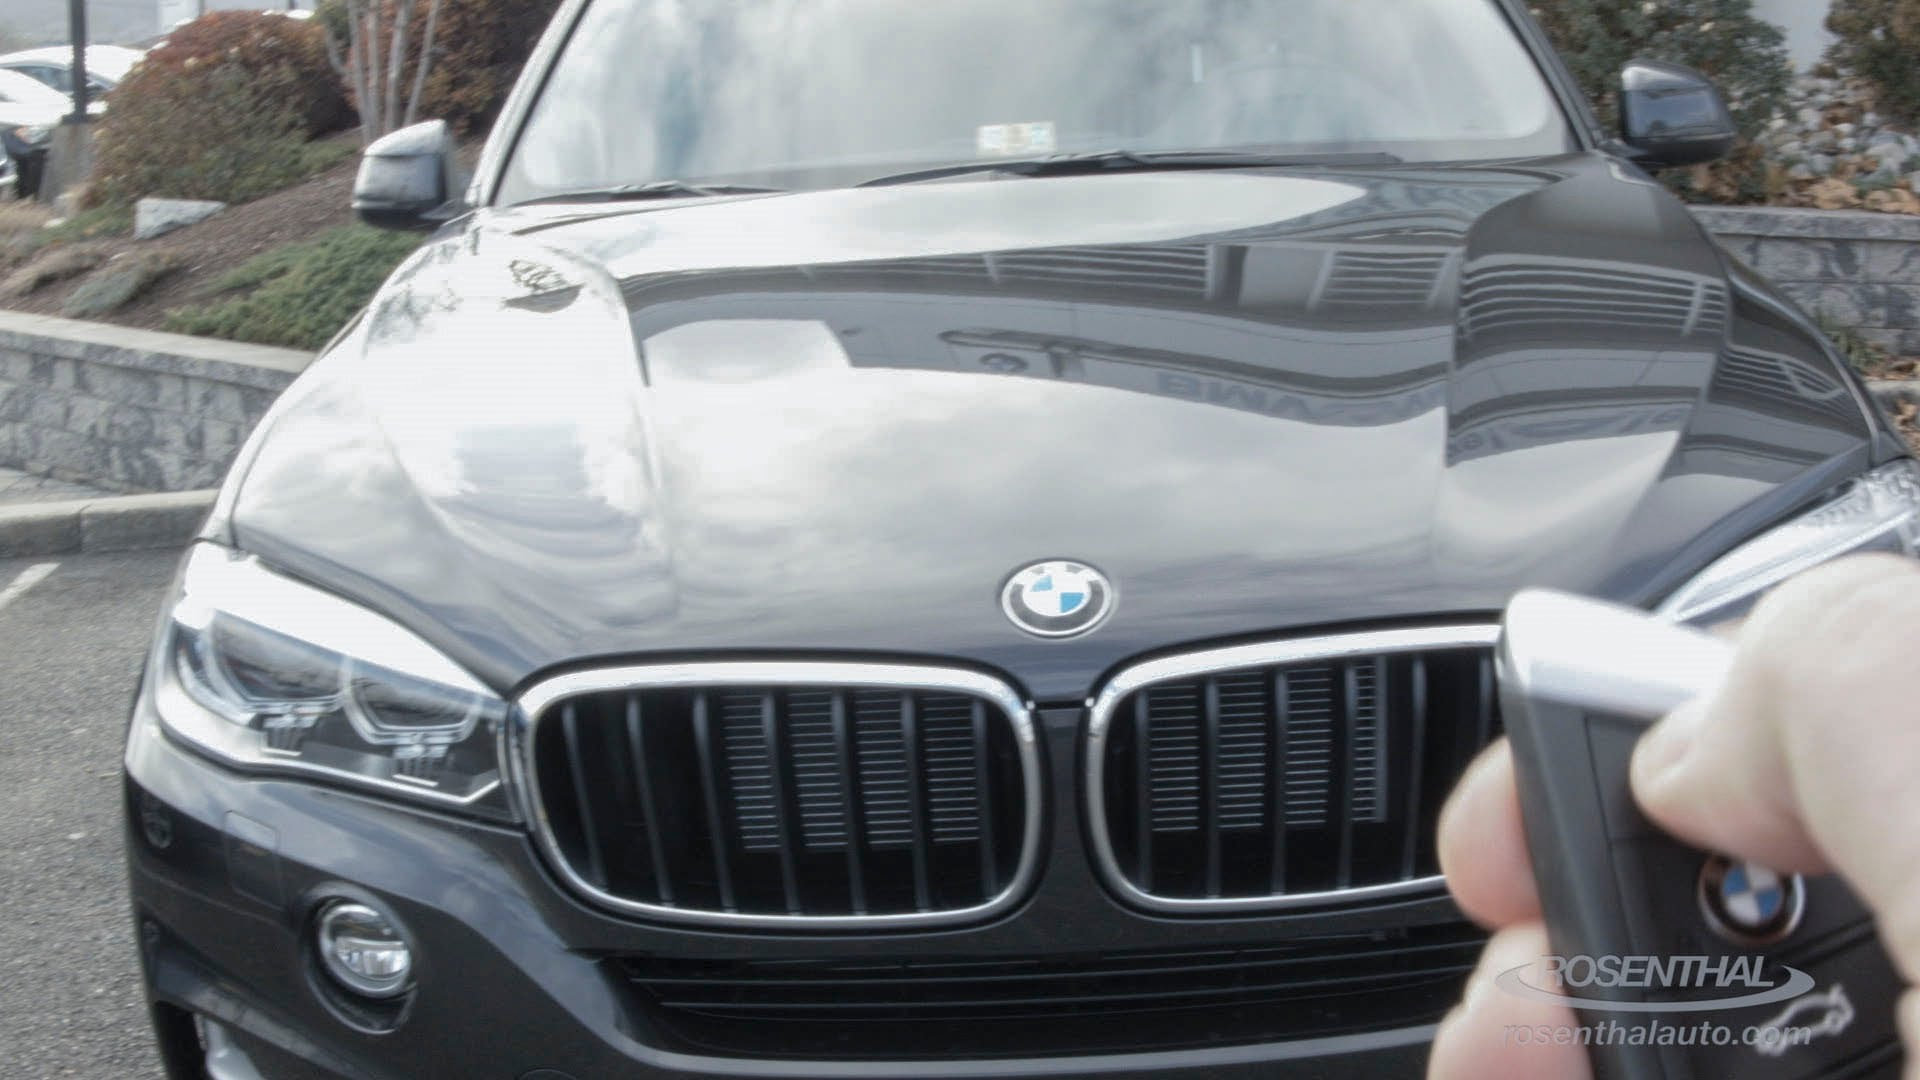 2014 BMW X5 Car Review Video In Florida